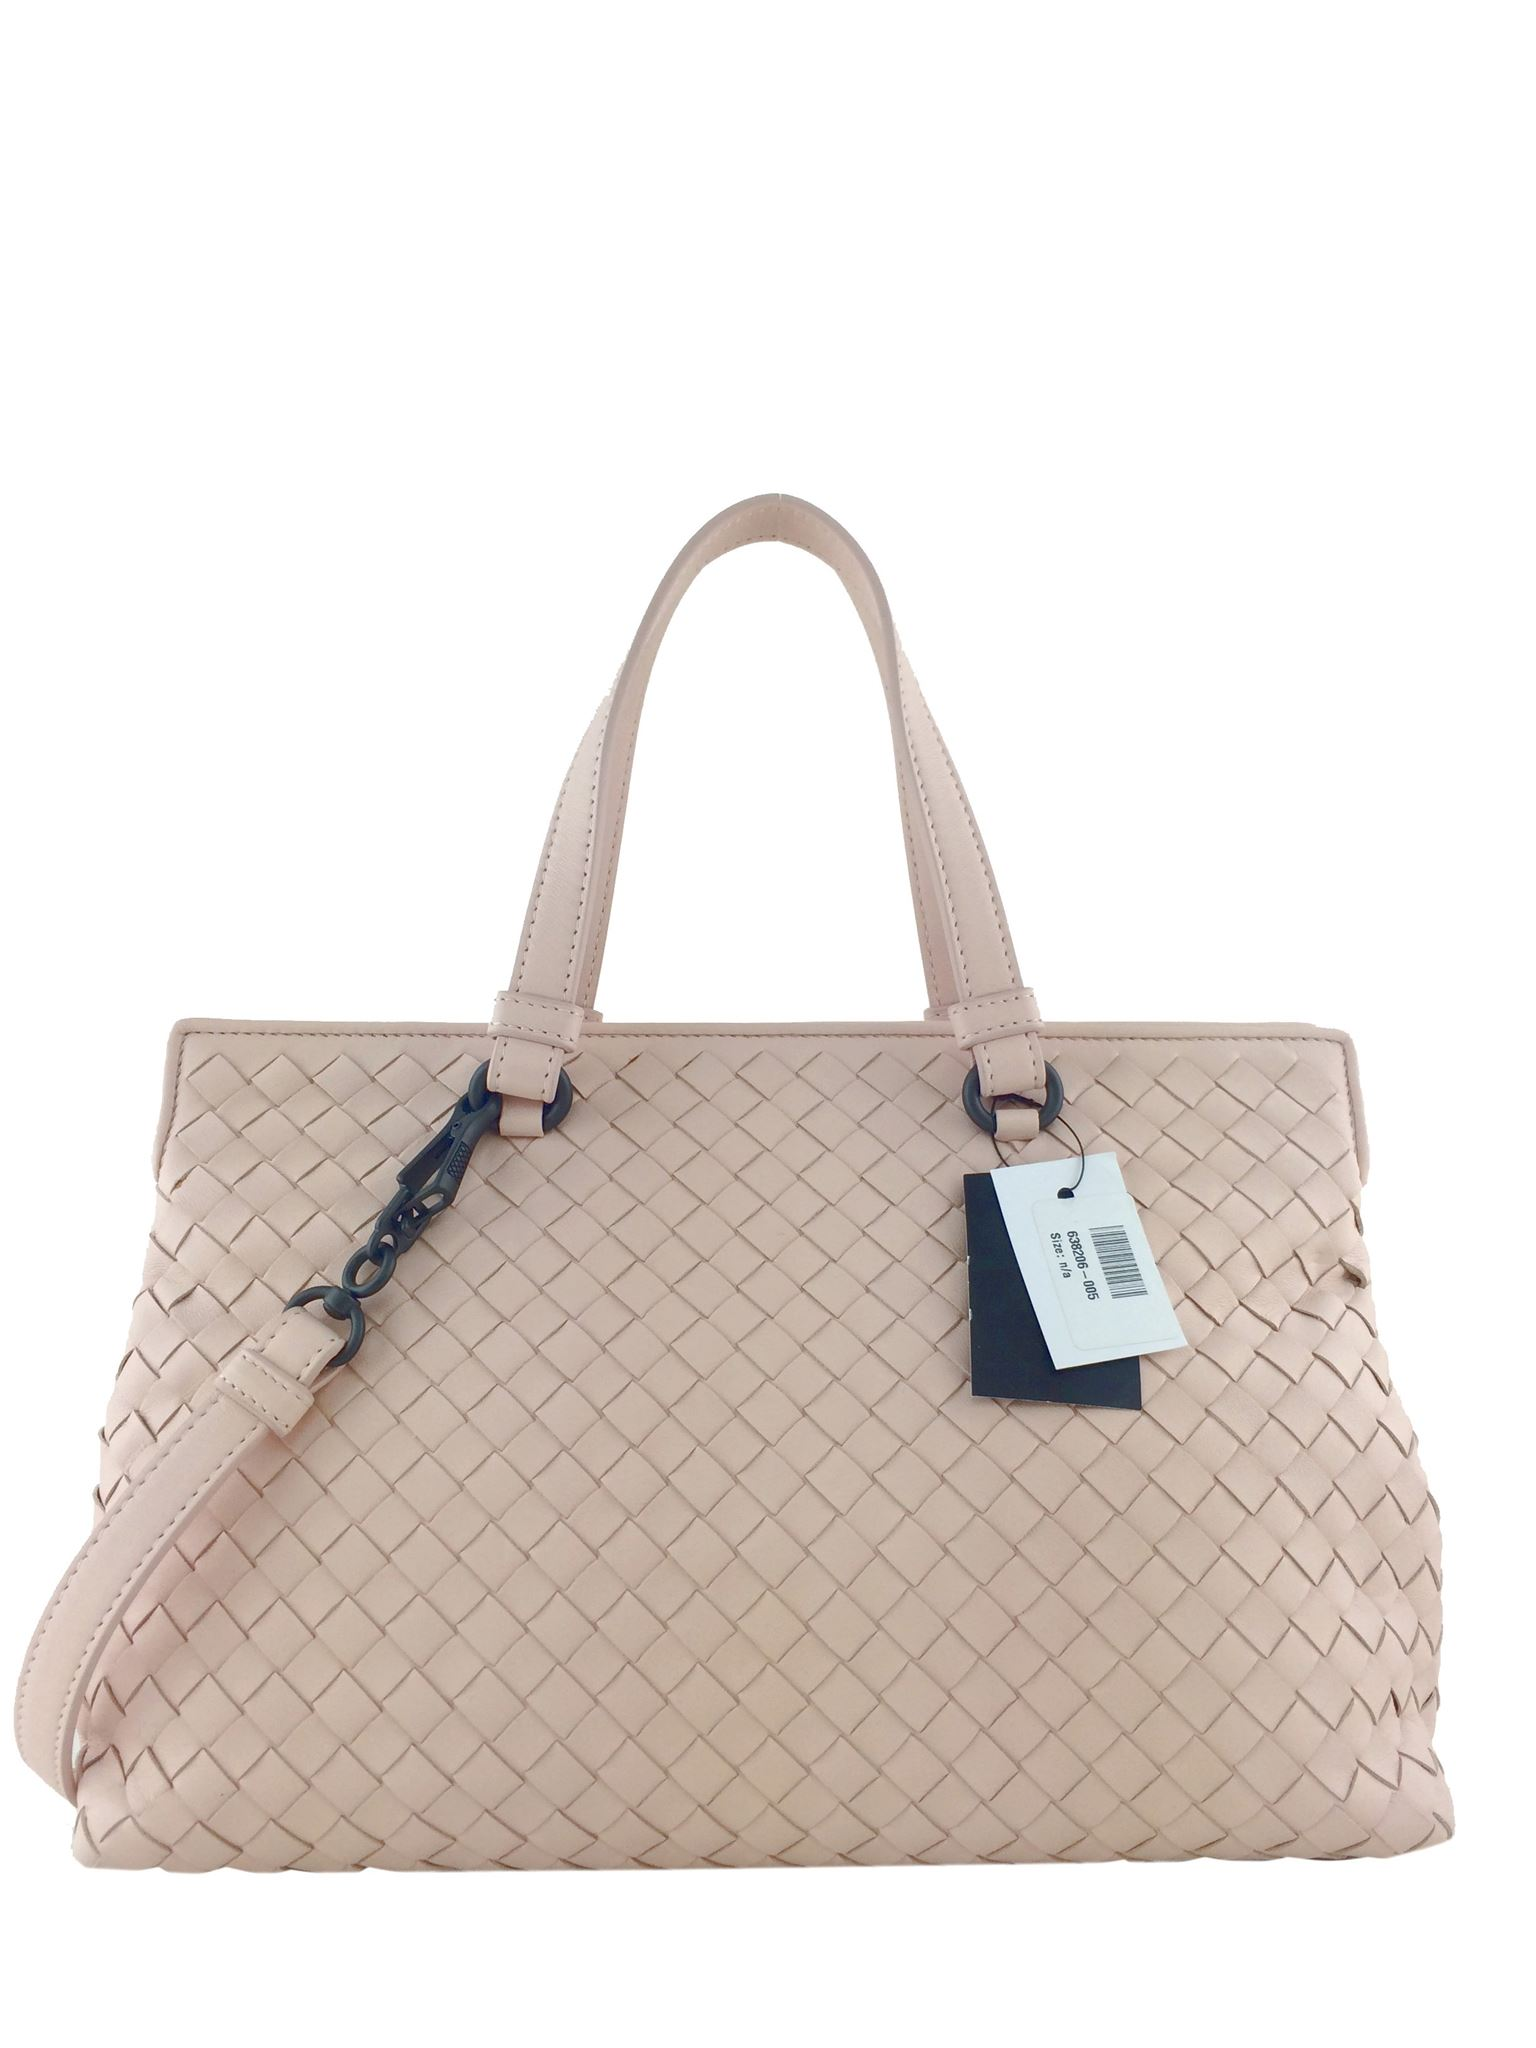 Details about Bottega Veneta Intrecciato Nappa Medium Top Handle Bag NEW 309f81d8bbb5e